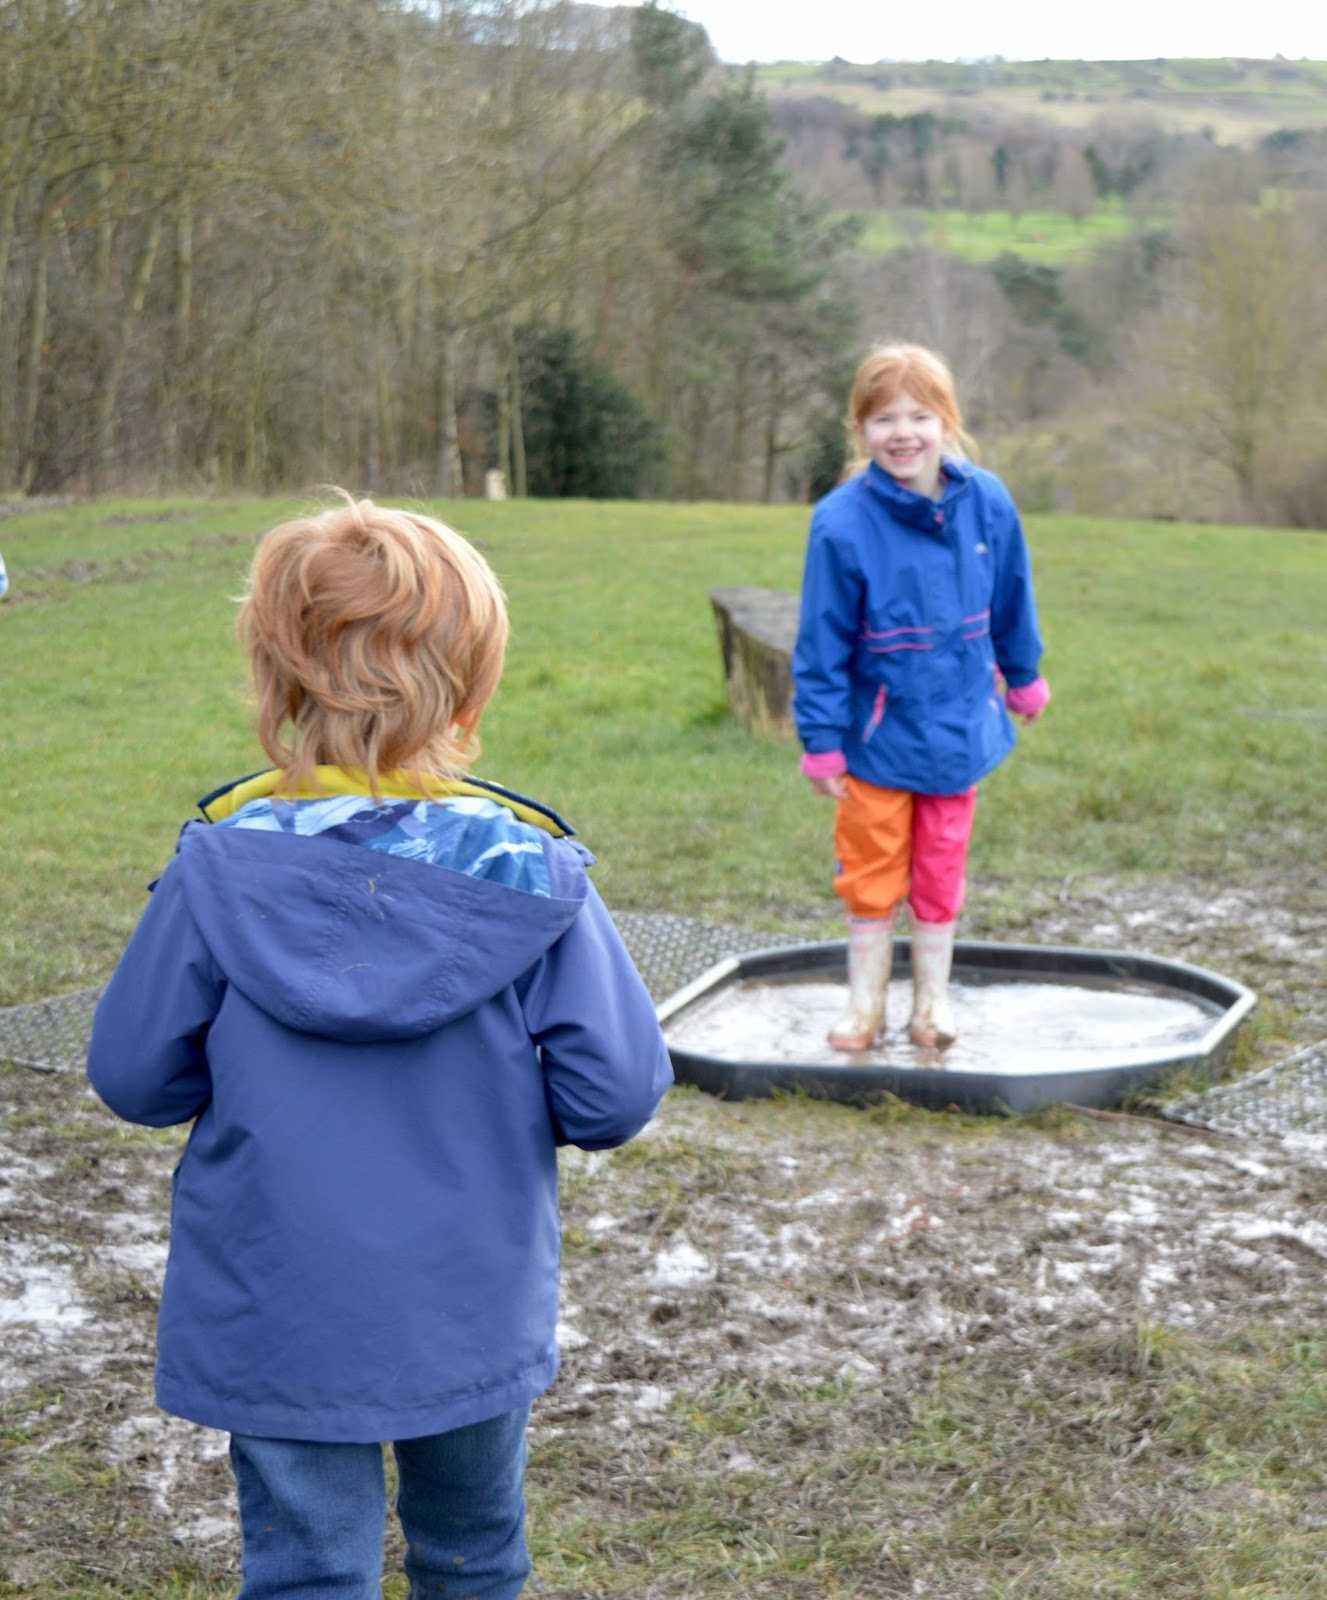 WWT Washington Wetland Centre | An Accessible North East Day Out for the Whole Family - puddle jumping